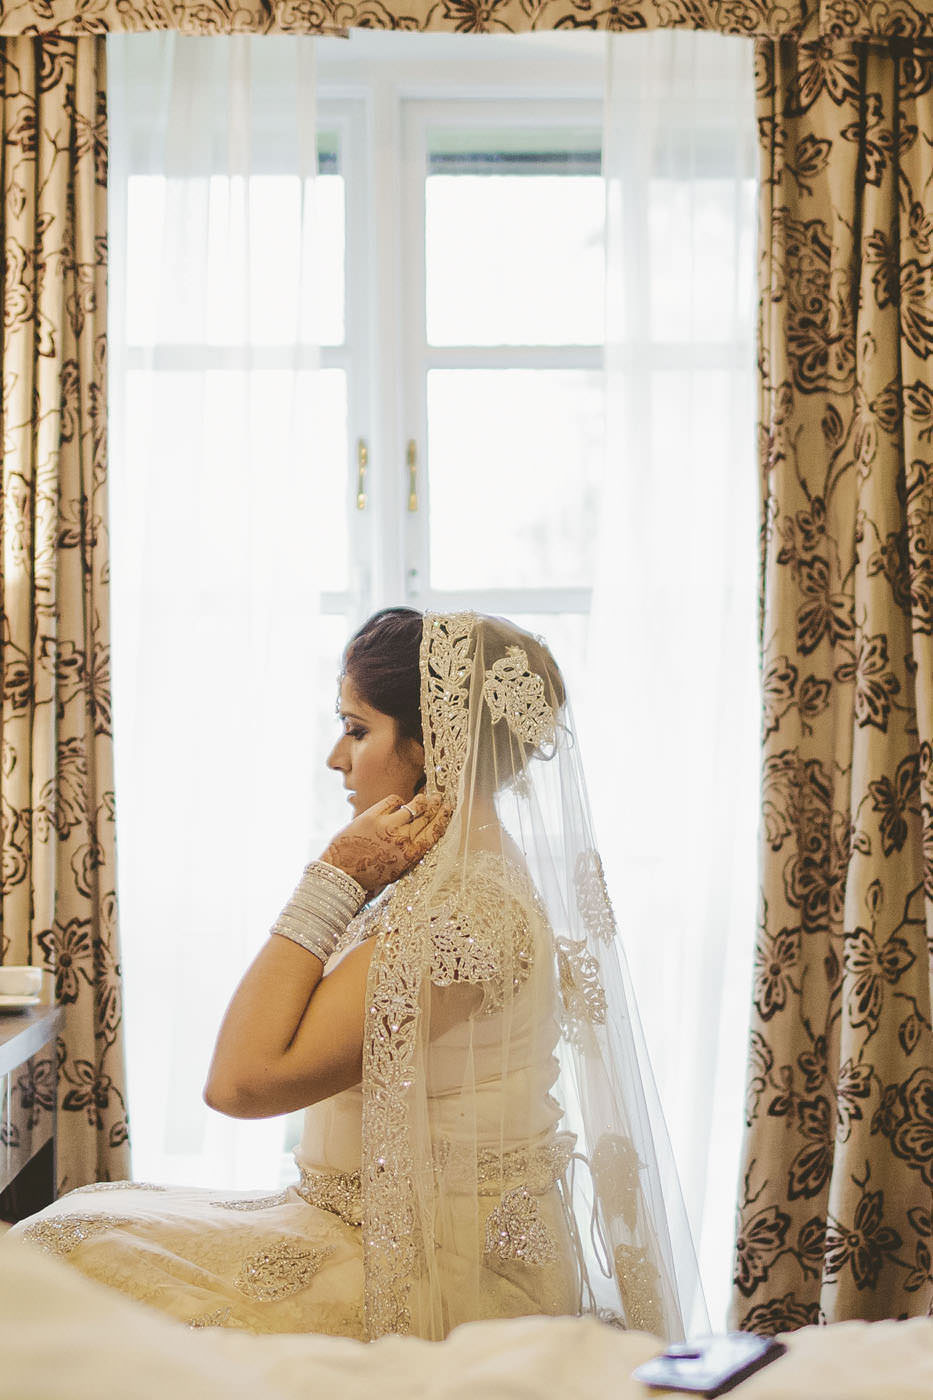 edmundjasveen burford bridge hotel wedding photographer 0029